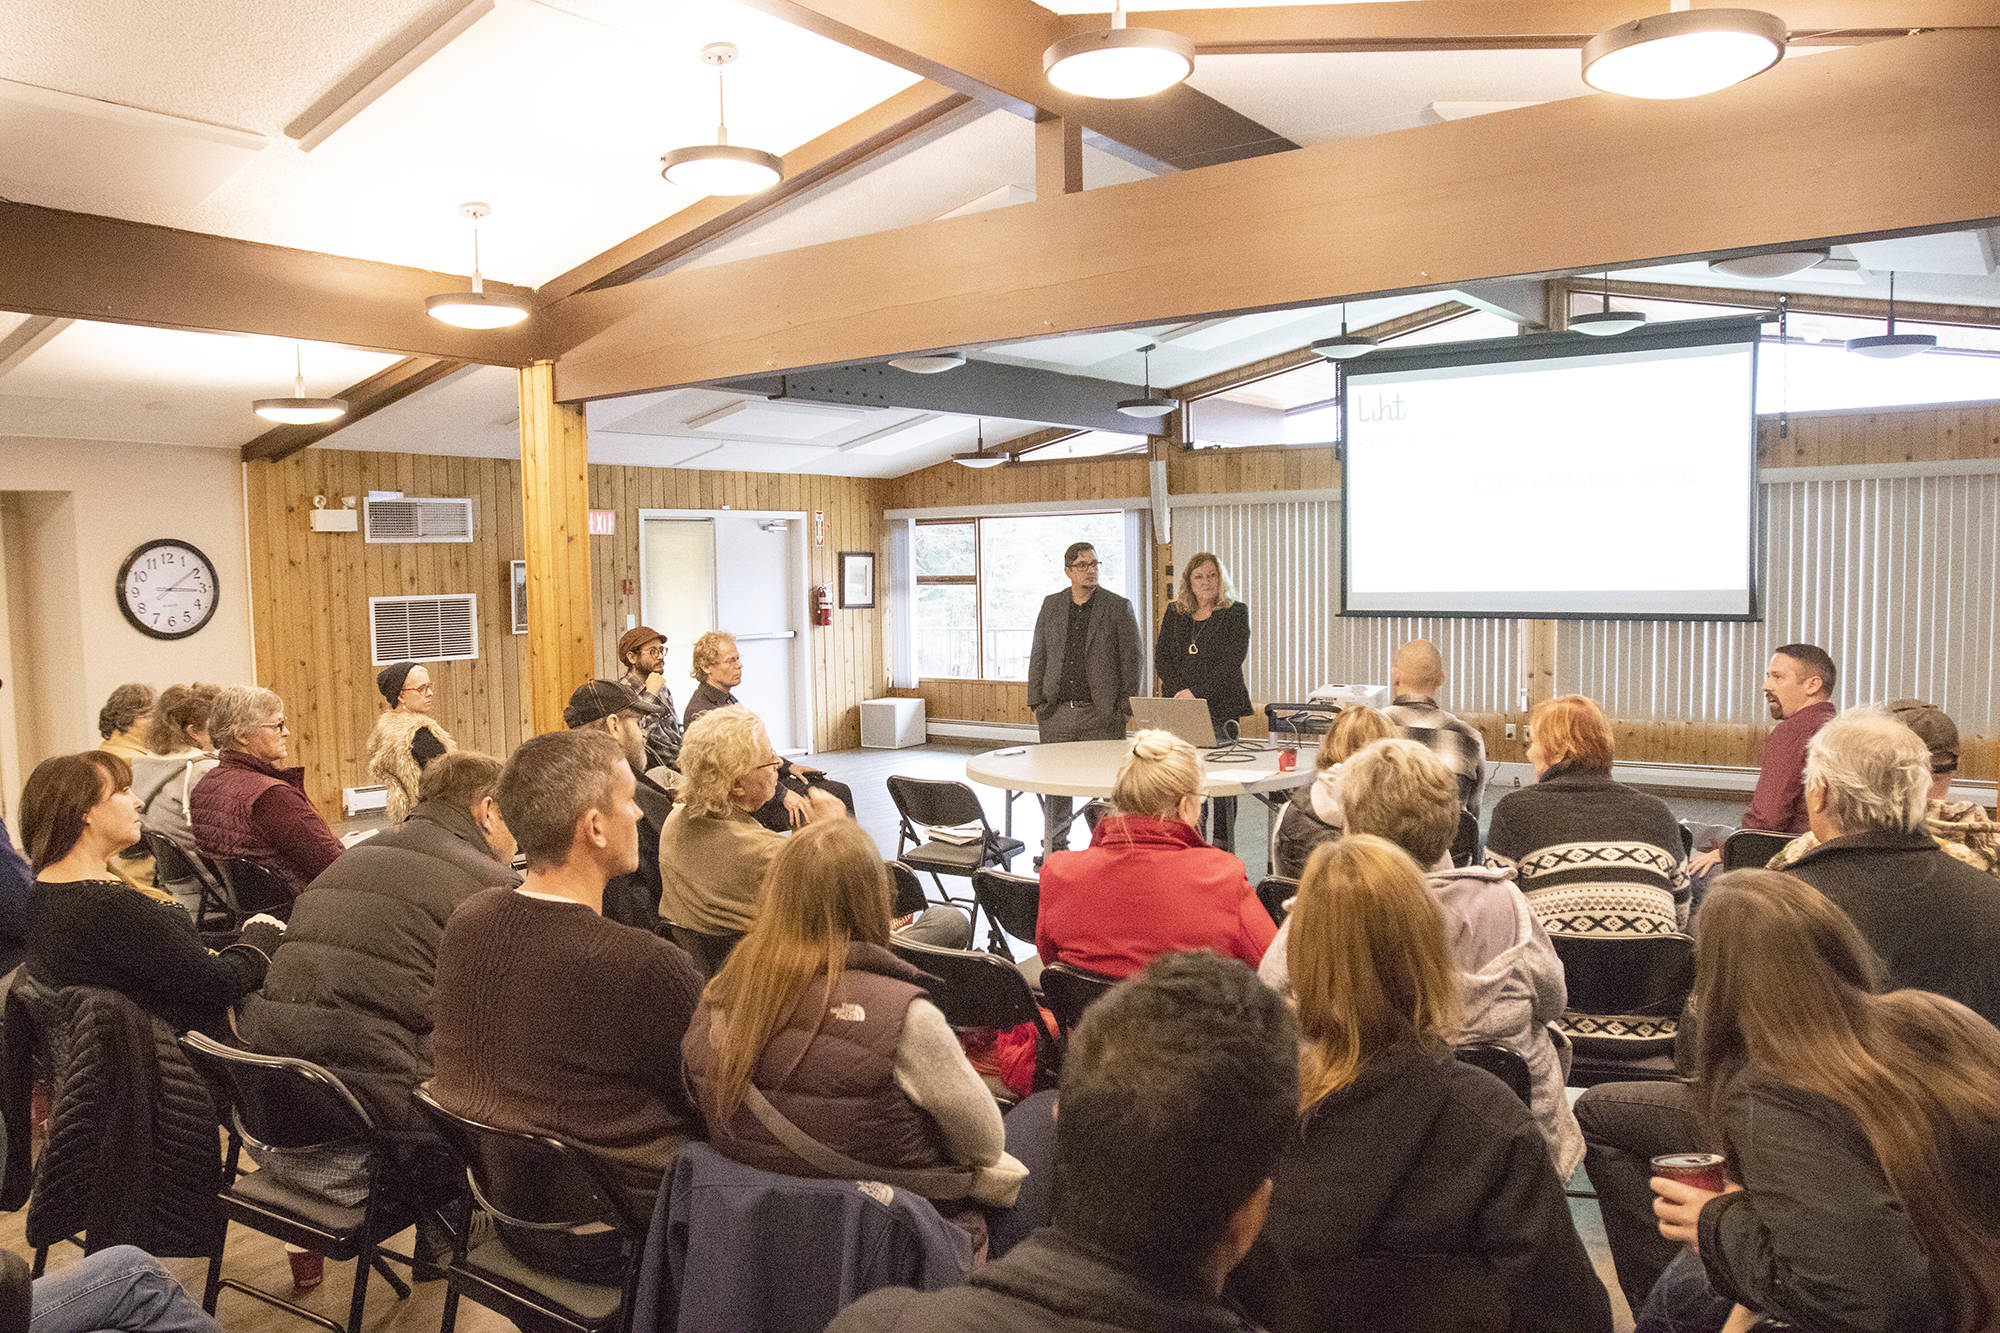 Liht Cannabis Corp's independent director Richard Huhn and chief operating officer Linda Sampson speak to the crowd gathered during a public information session at the Cedar Heights Community Association in Sorrento, Nov. 17, one of two public meetings held. (Jodi Brak/Salmon Arm Observer)